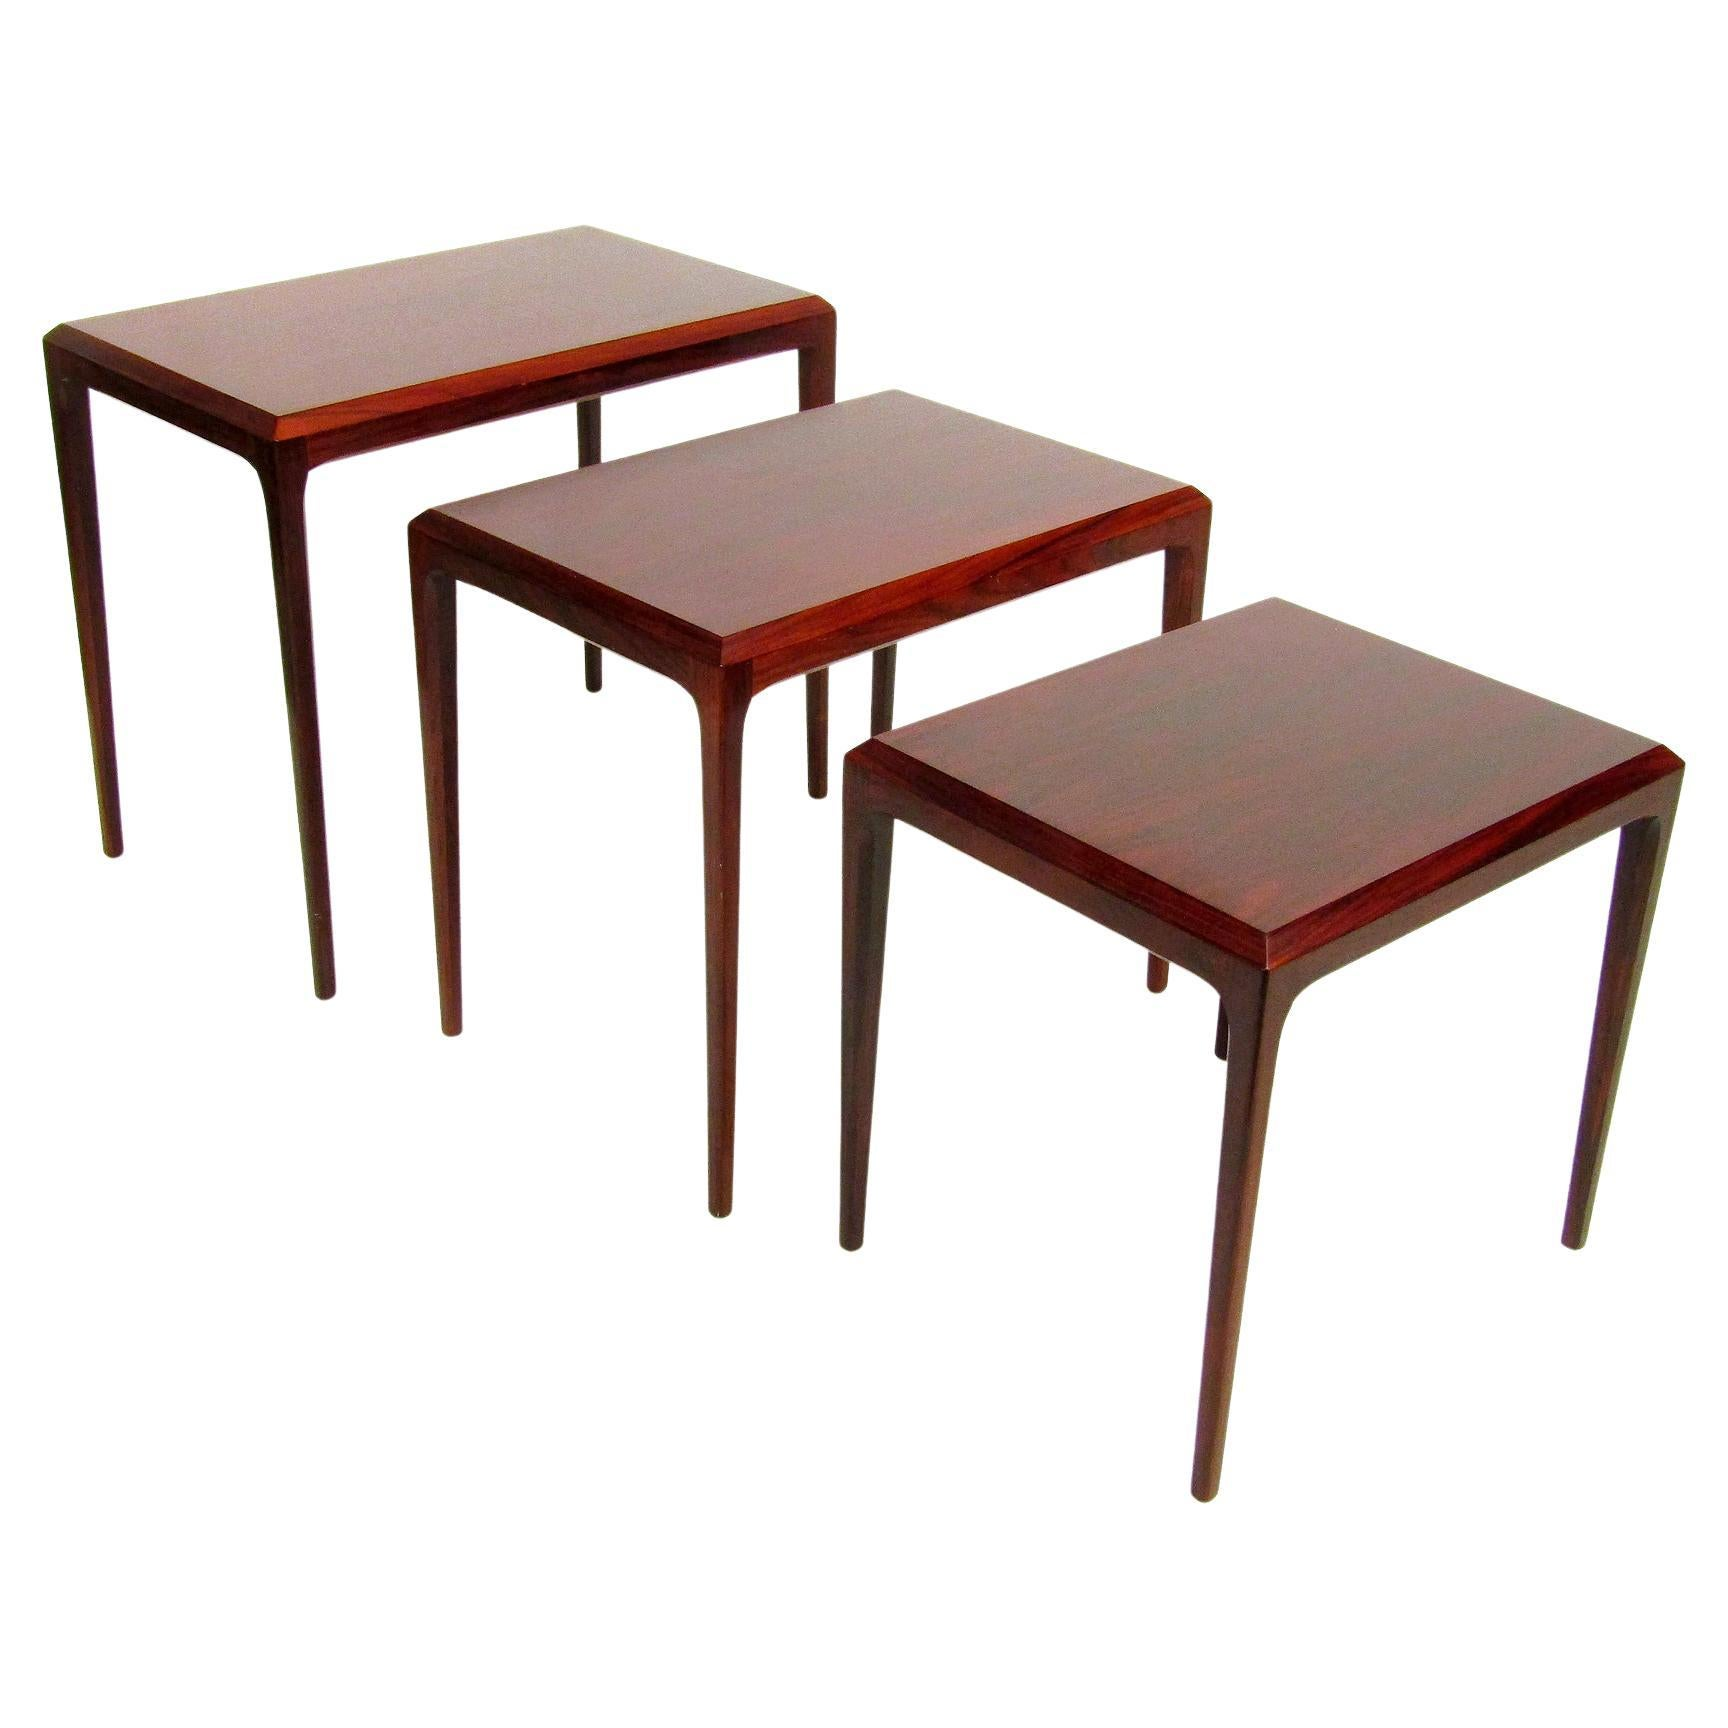 Three Danish Rosewood Nesting Tables by Johannes Andersen for Silkeborg